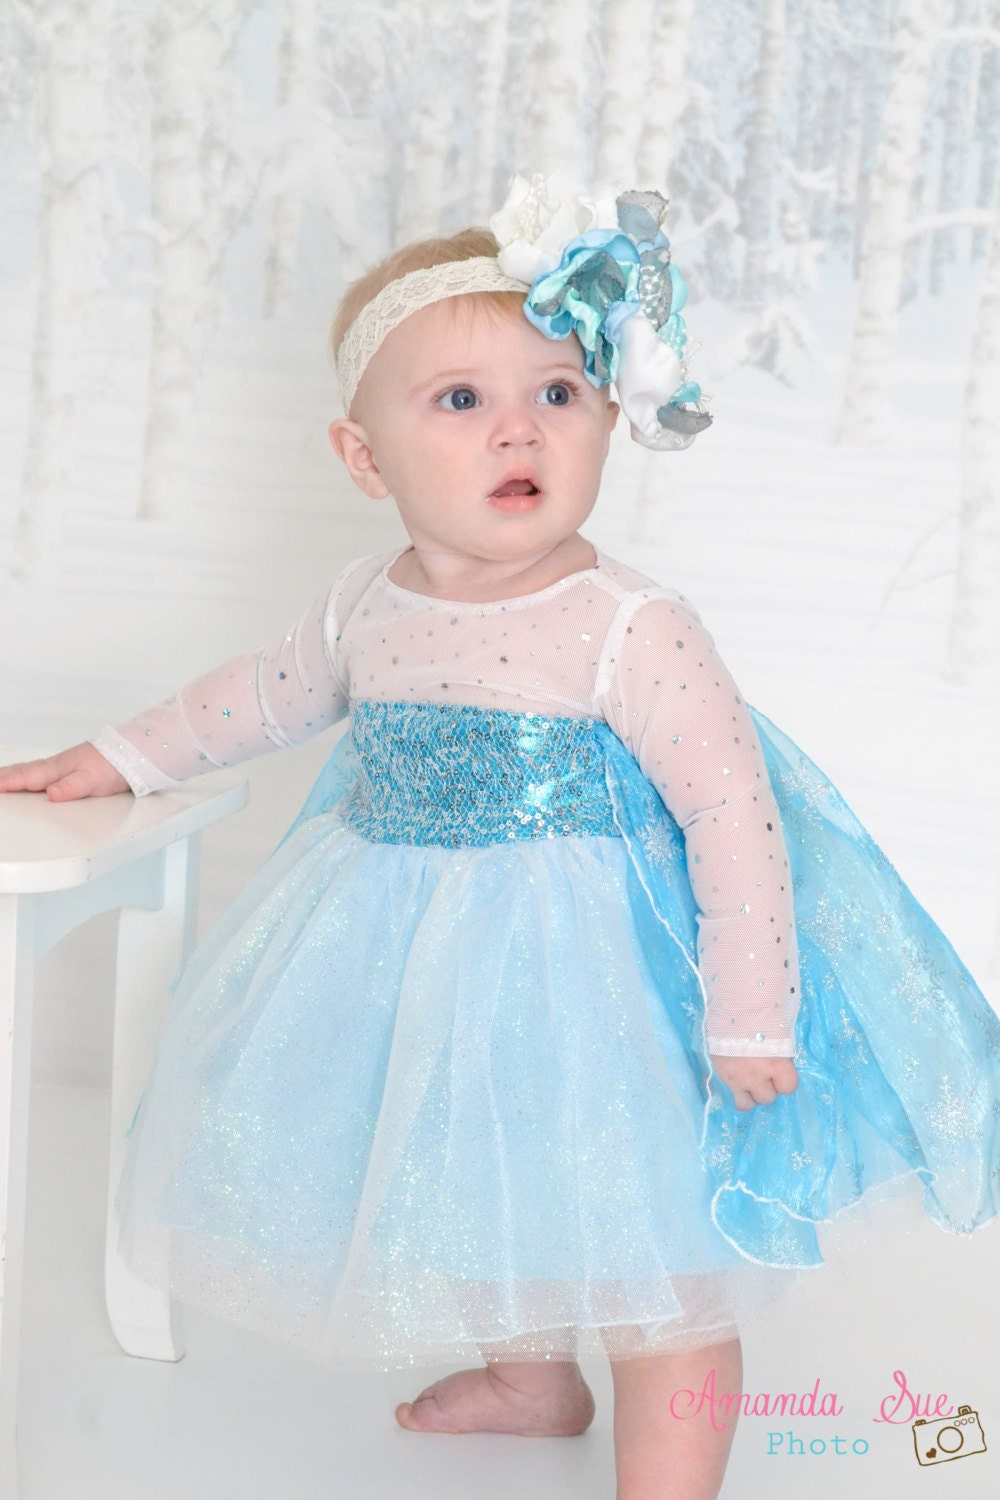 You searched for: frozen baby dress! Etsy is the home to thousands of handmade, vintage, and one-of-a-kind products and gifts related to your search. No matter what you're looking for or where you are in the world, our global marketplace of sellers can help you find unique and affordable options. Let's get started!